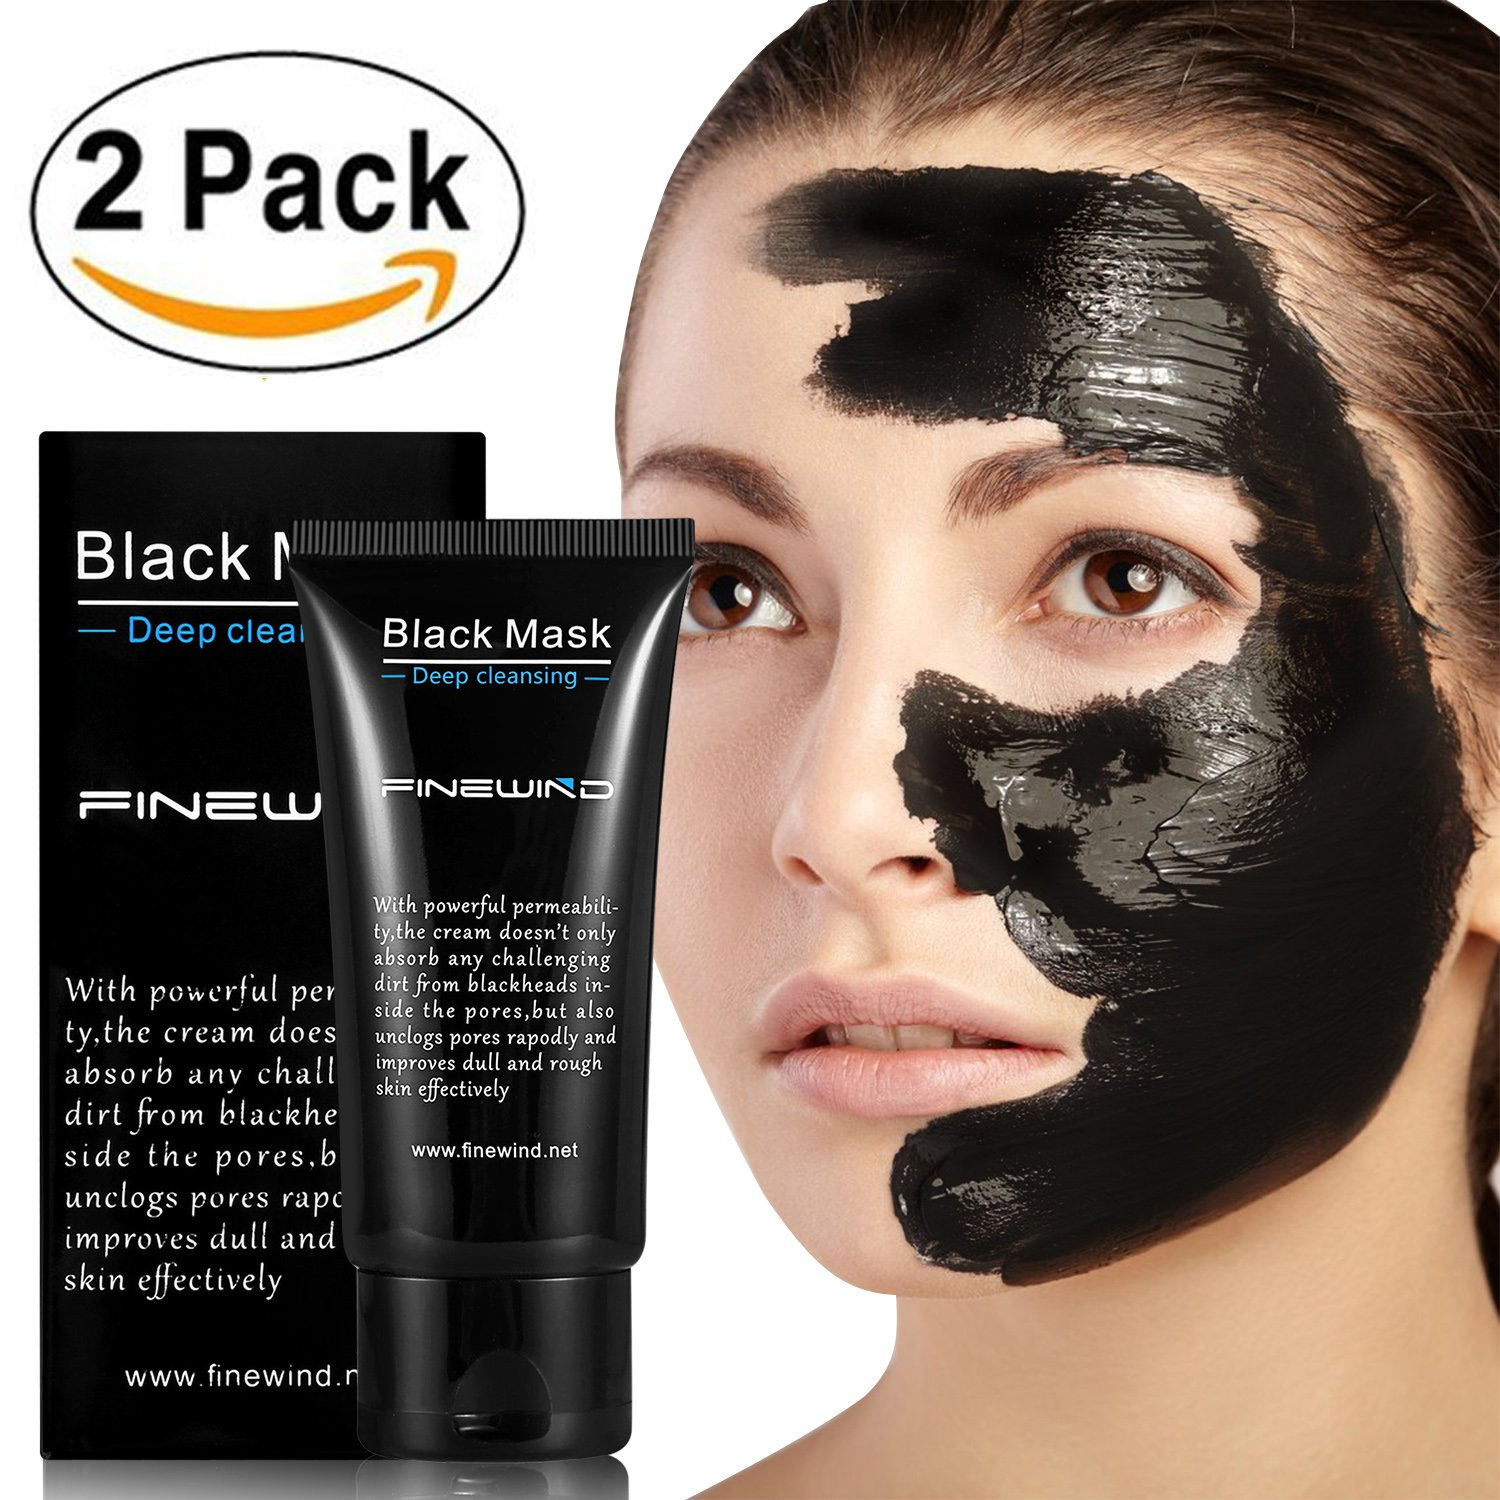 Blackhead Remover Cleaner Purifying Deep Cleansing Acne Black Mud Face Mask Peel-off (2 PCS) Finewind